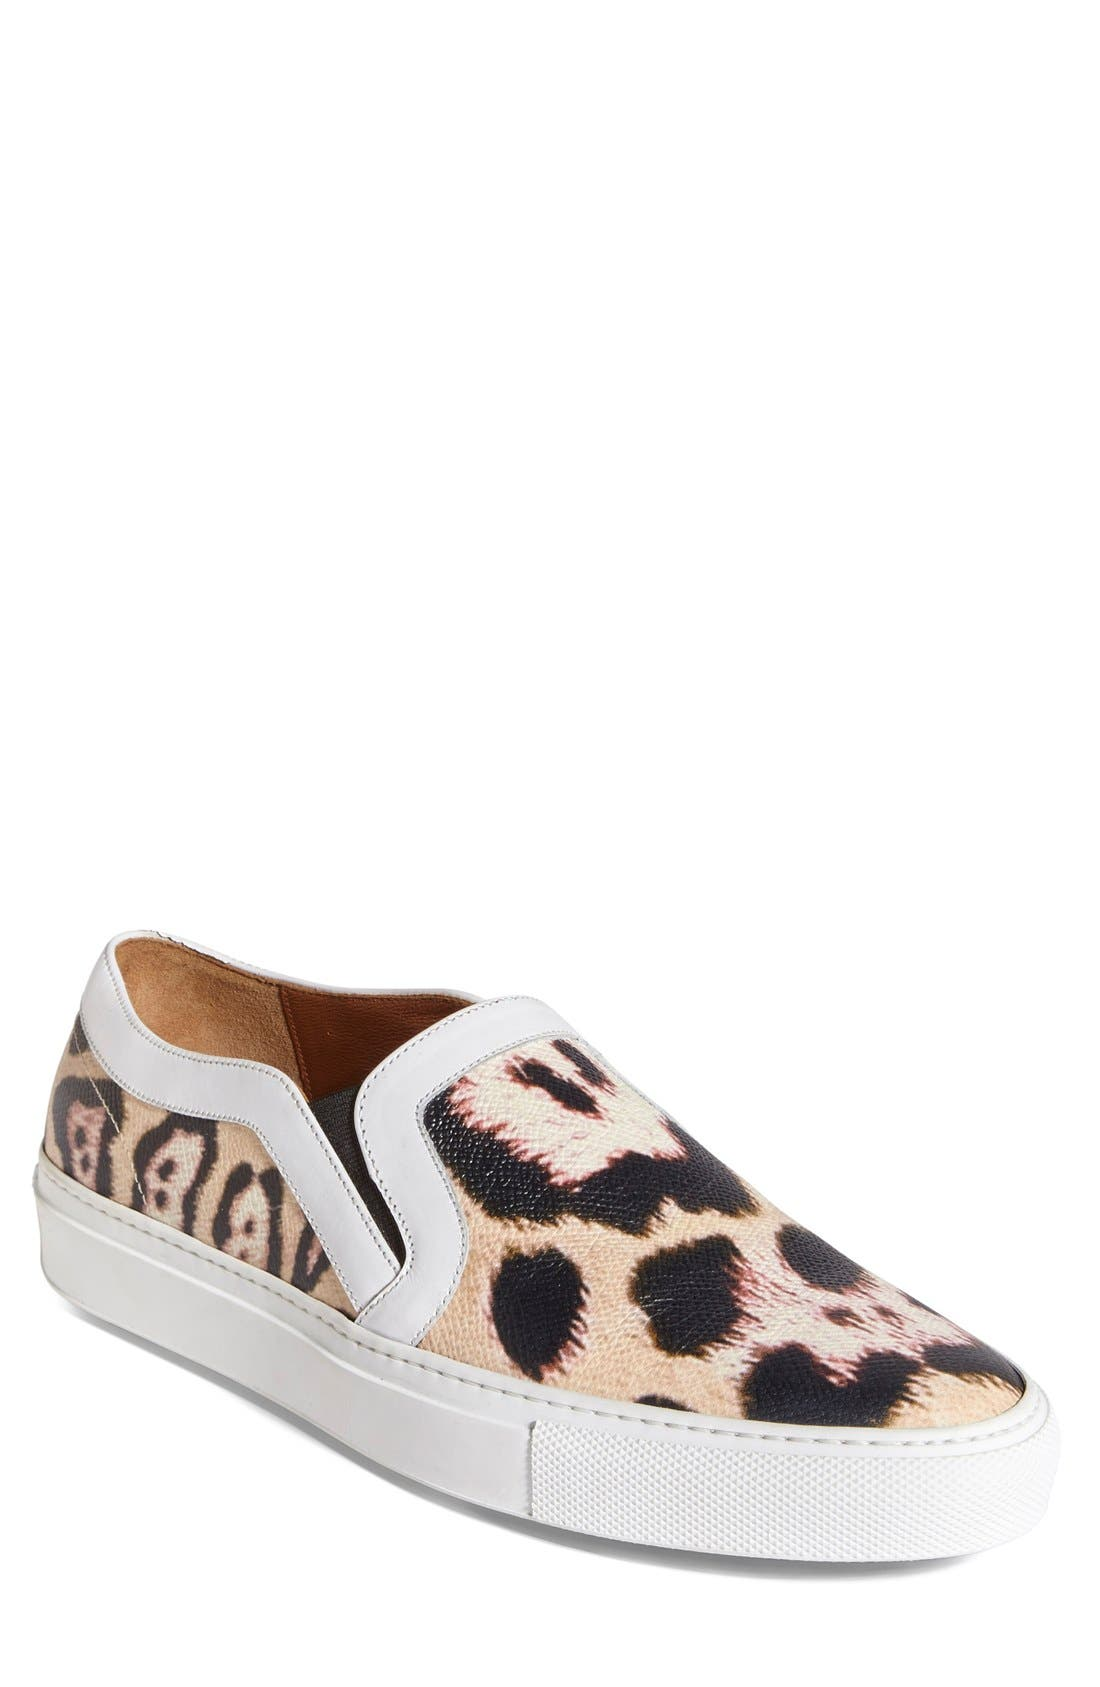 GIVENCHY Leopard Print Skate Slip-On Sneaker, Main, color, 200